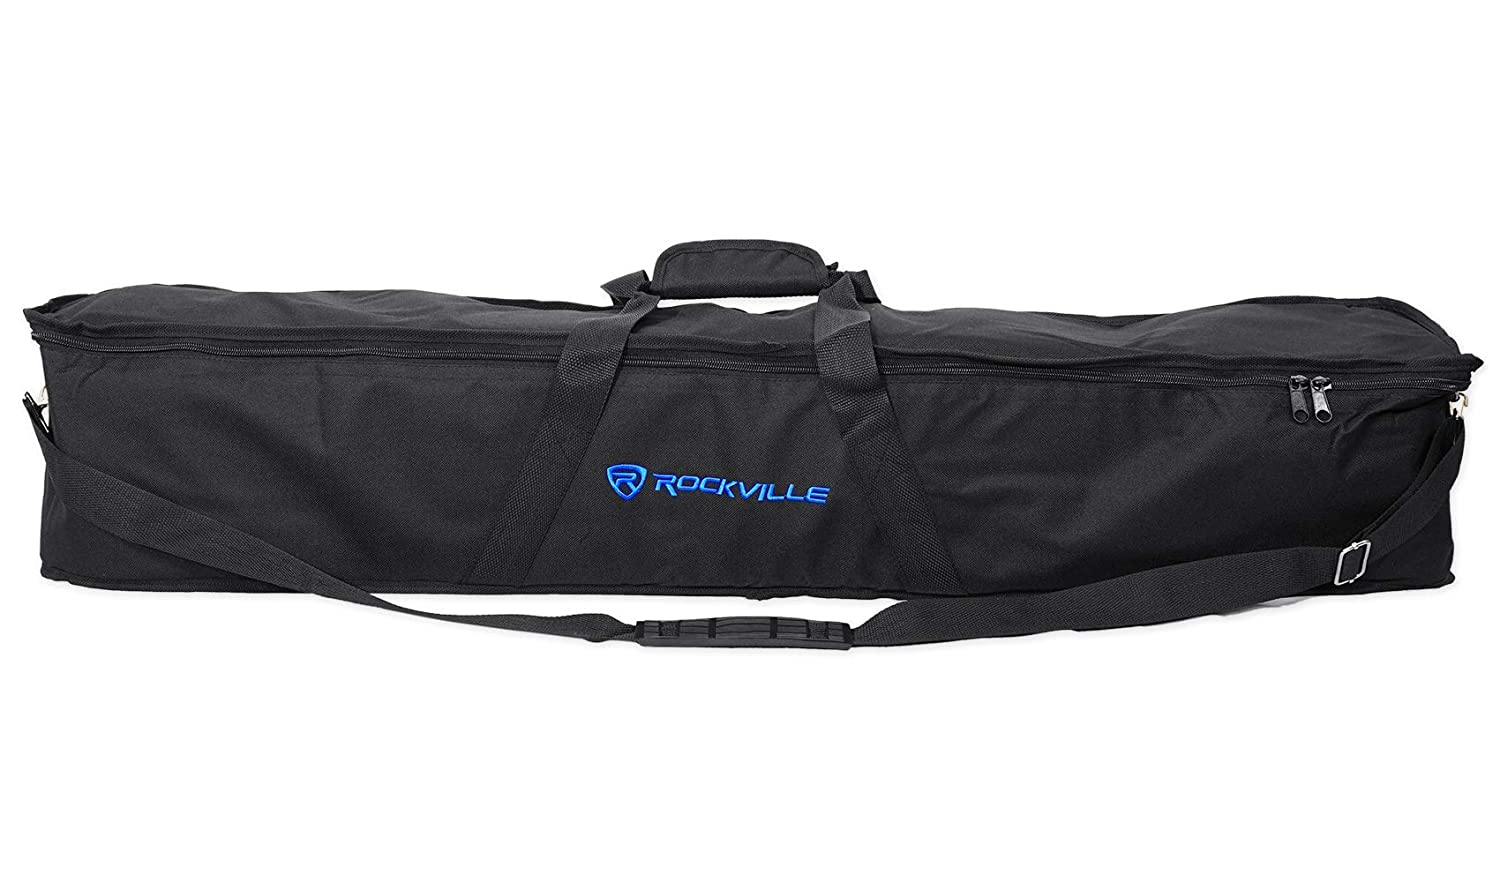 Rockville Transport Bag for Chauvet COLORstrip LED Wash Light Strip RLB60 For COLORstrip